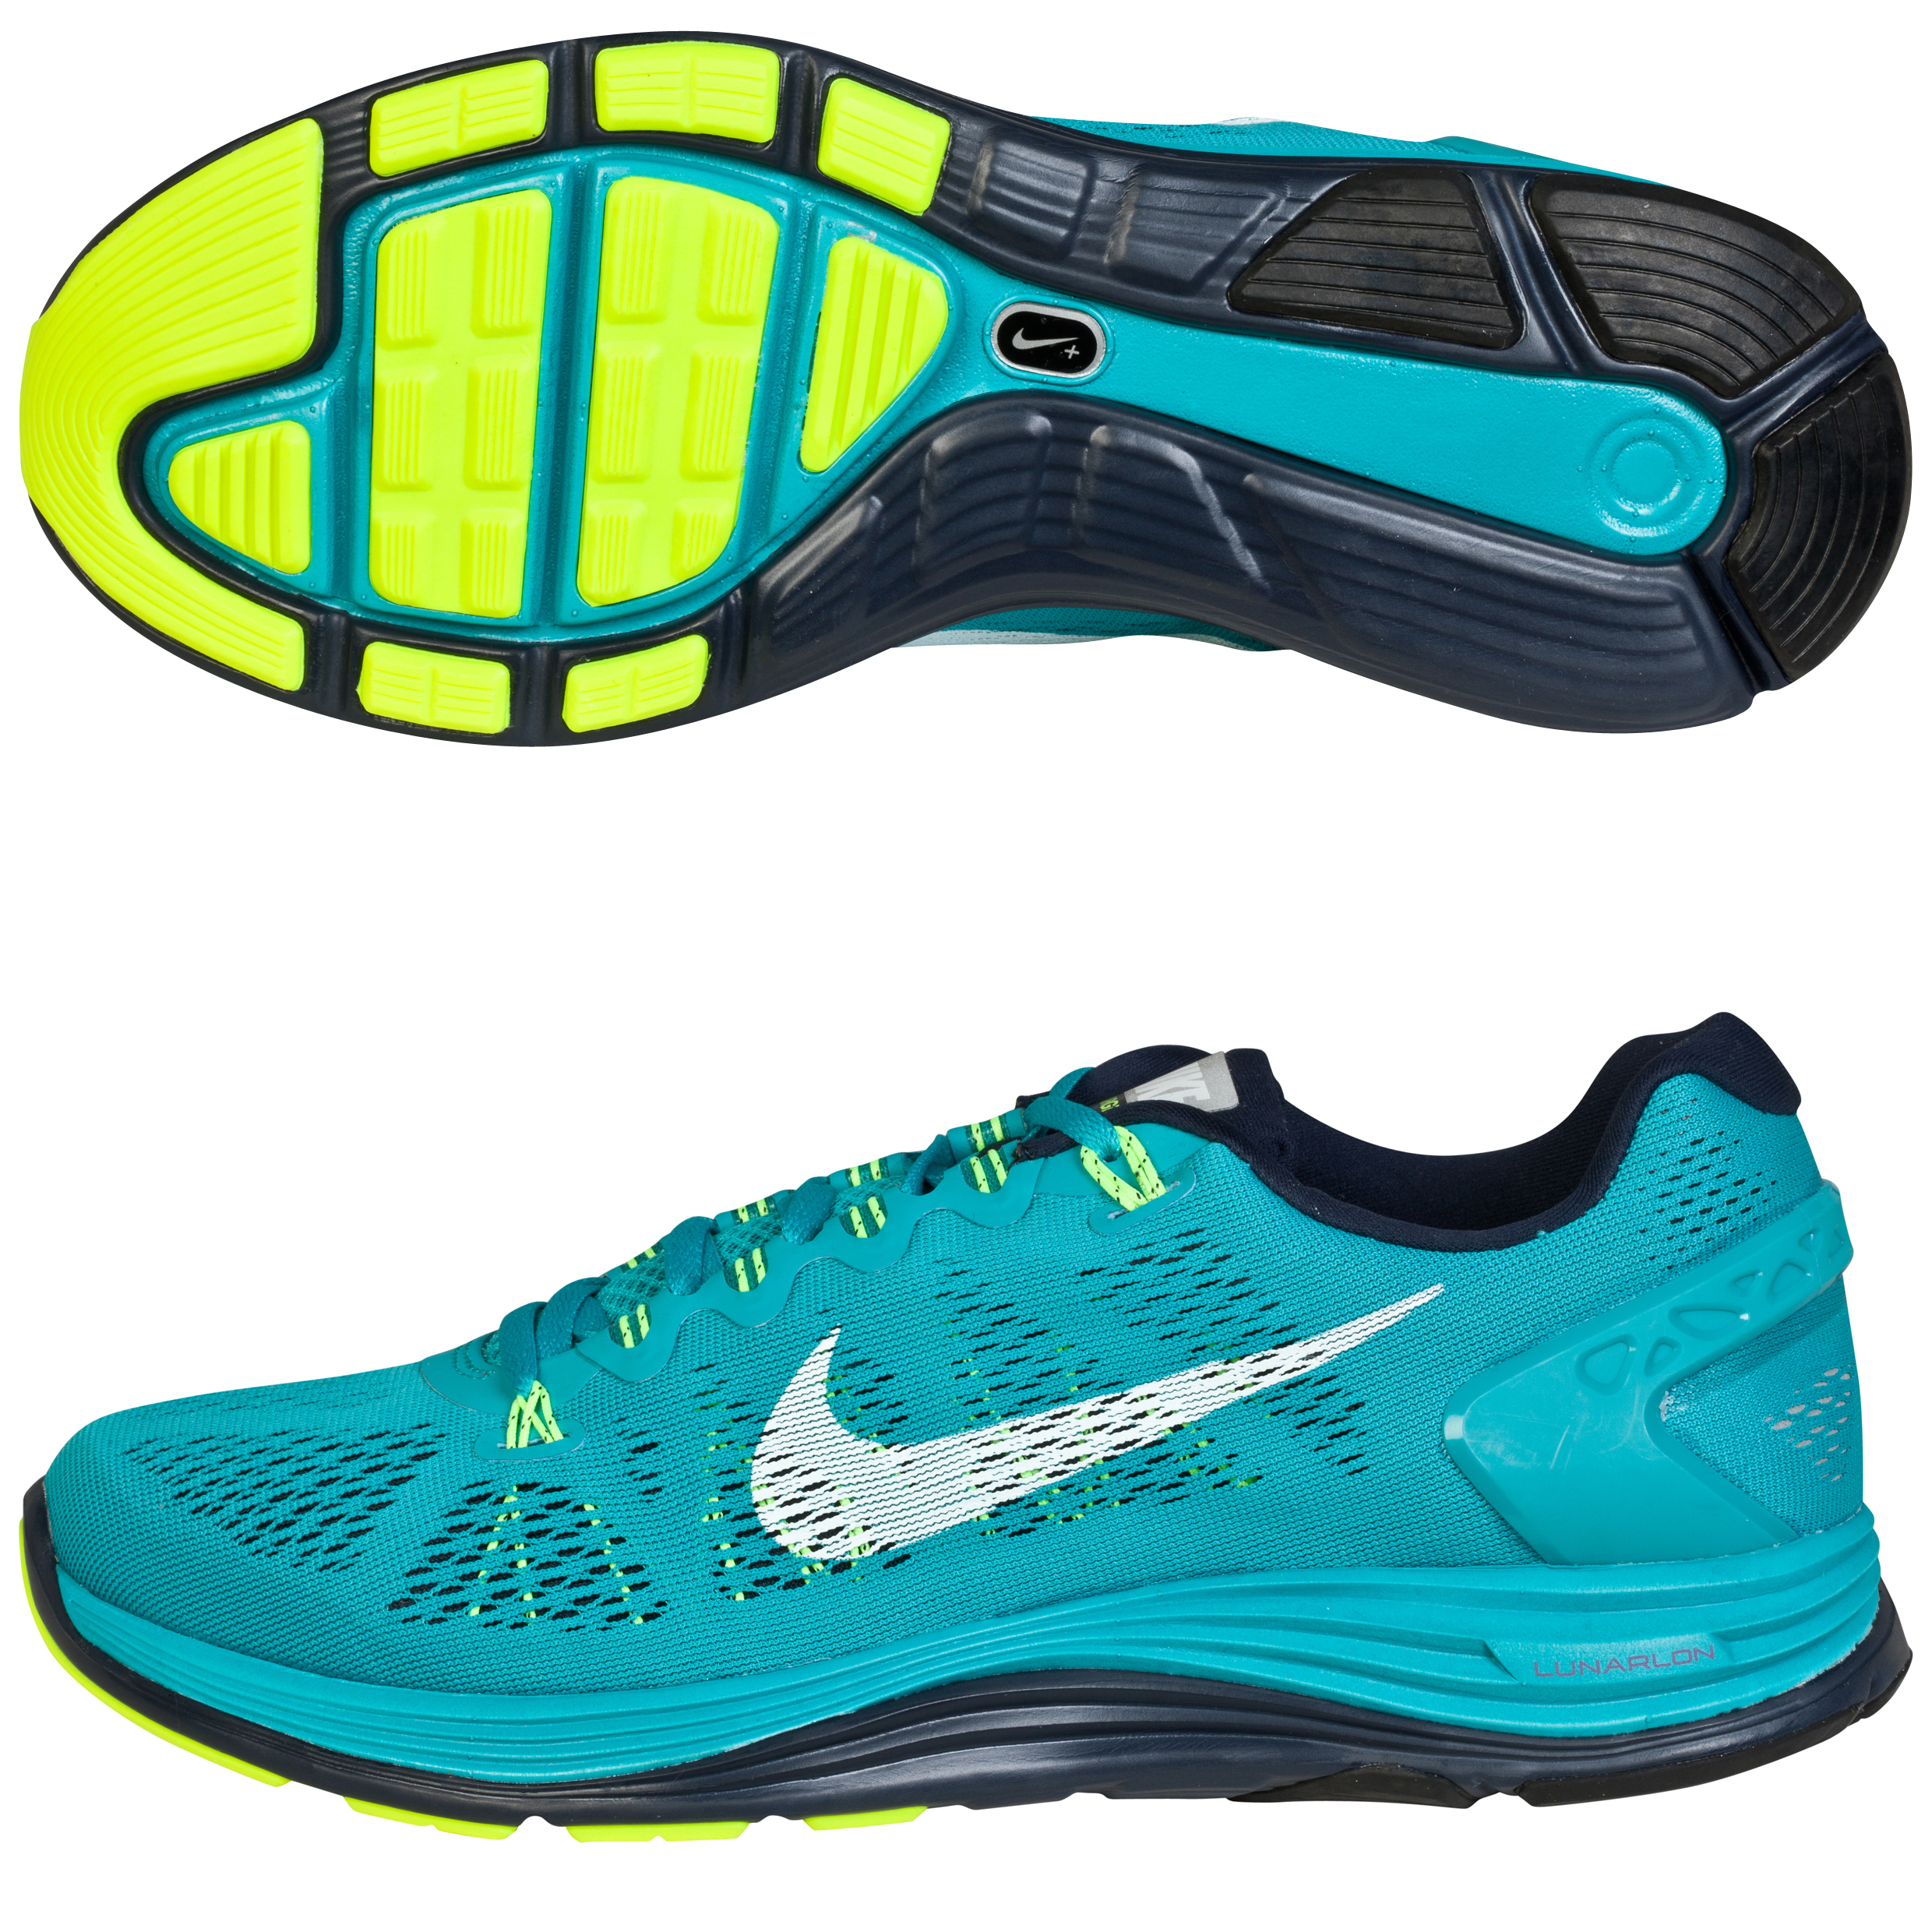 Nike Lunarglide(+) 5 Trainers Green